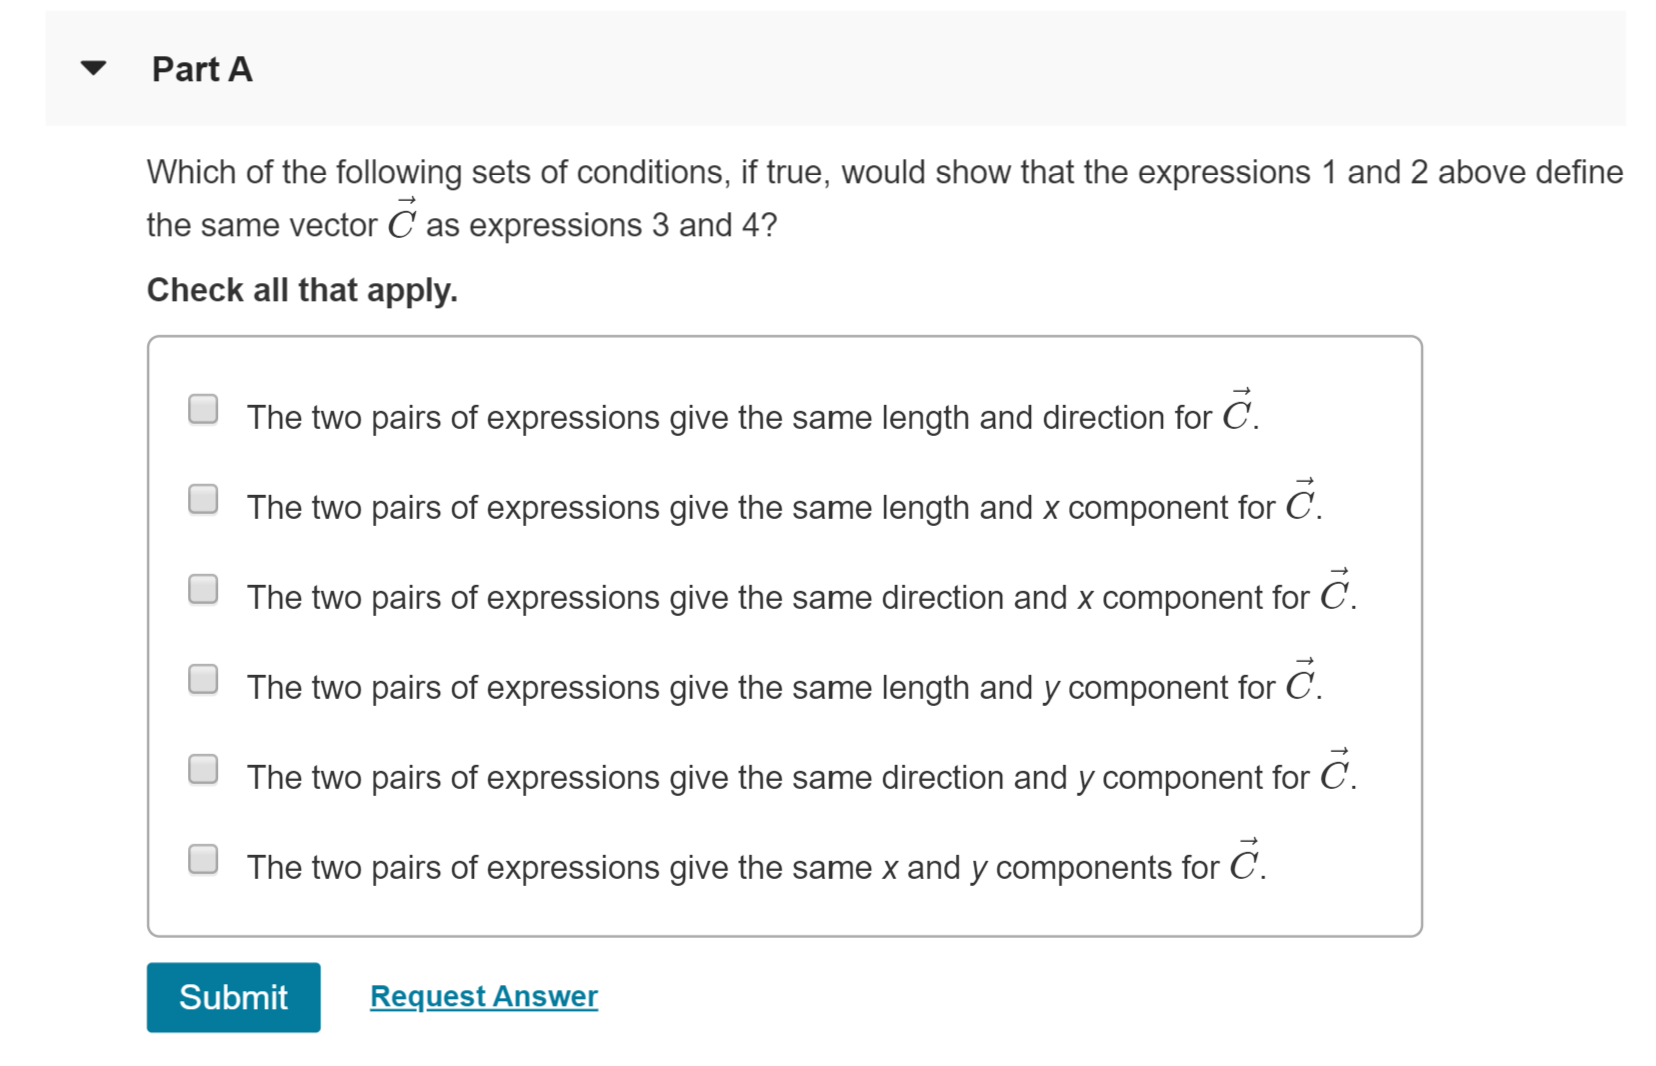 Part A Which of the following sets of conditions, if true, would show that the expressions 1 and 2 above define the same vector C as expressions 3 and 4? Check all that apply The two pairs of expressions give the same length and direction for C. C. The two pairs of expressions give the same length and x component for The two pairs of expressions give the same direction and x component for C. The two pairs of expressions give the same length and y component for C The two pairs of expressions give the same direction and y component for C. The two pairs of expressions give the same x and y components for C Submit Request Answer